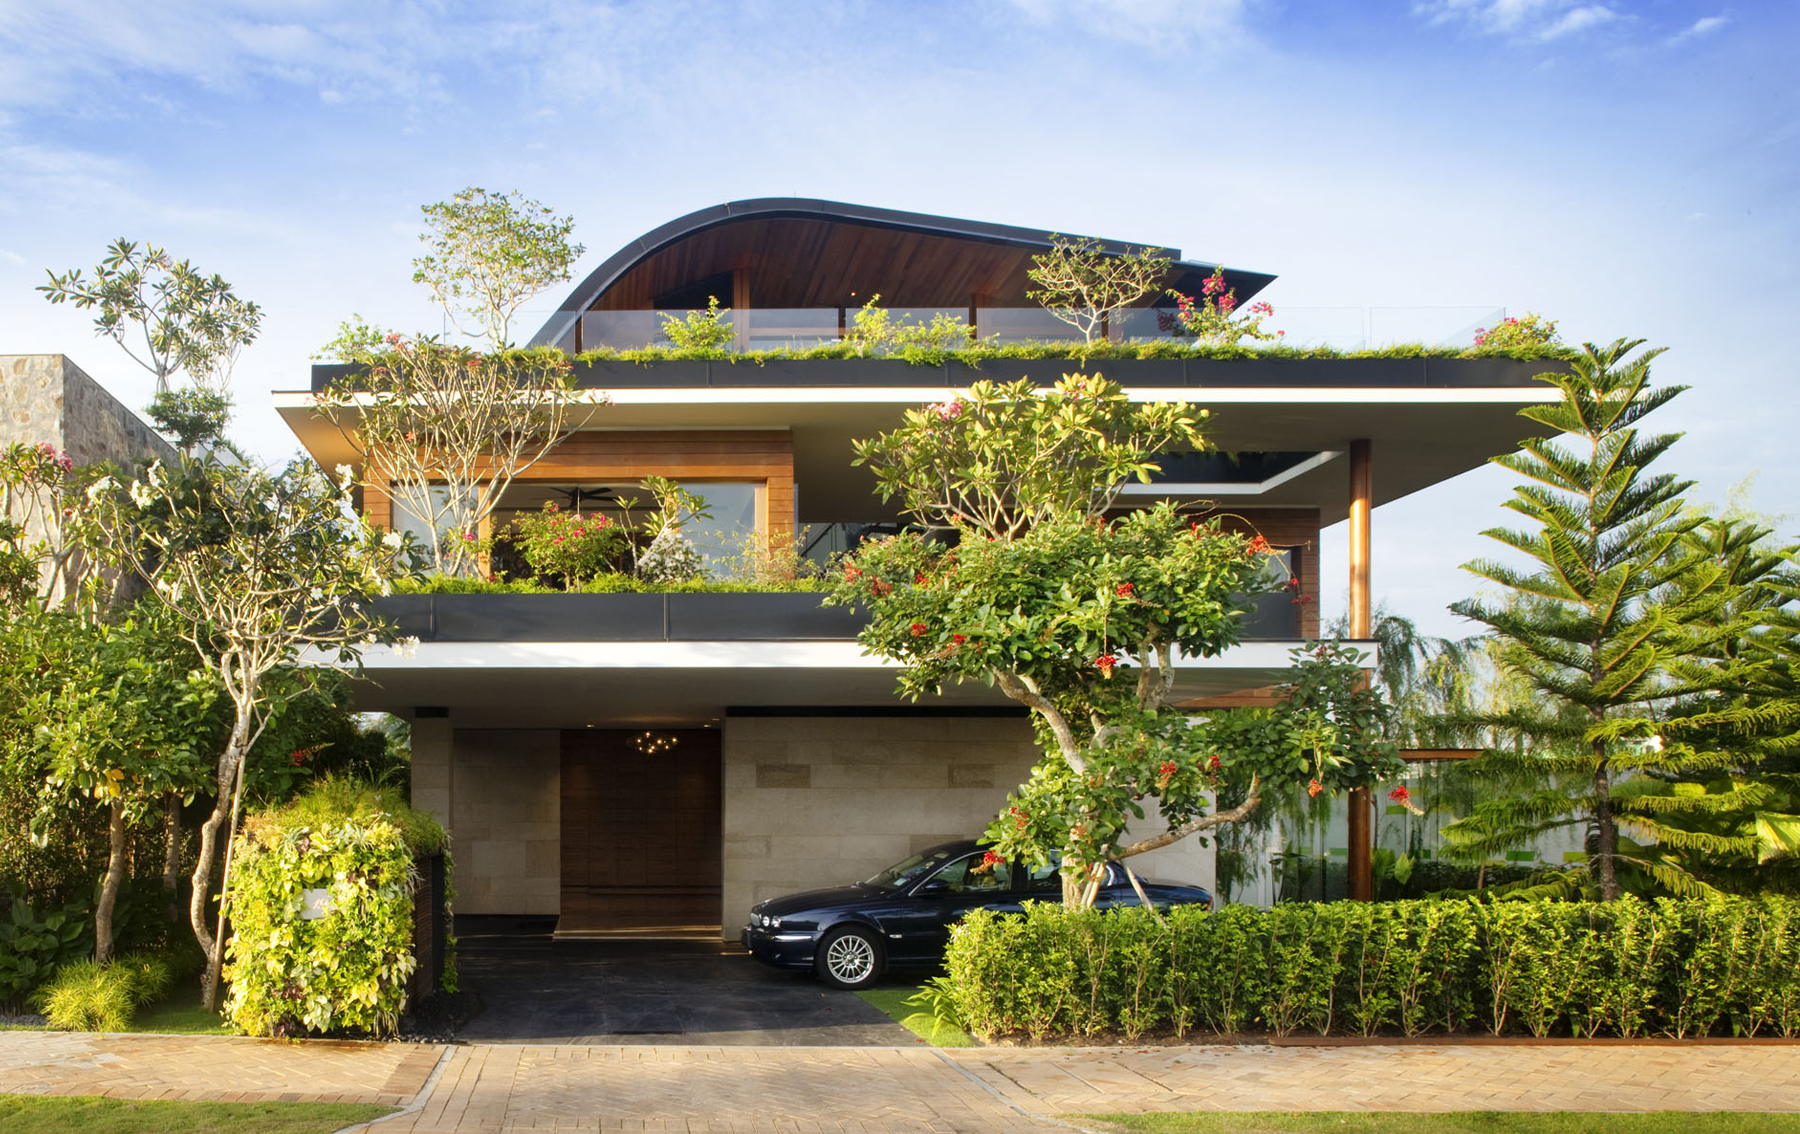 MEERA SKY GARDEN HOUSE - Guz Architects | Singapore, UK on roof wood house, tangga house, steep slope on a green house, sky tree house, sky building house, the manor house, gazebo house, la jolla razor house, sky does minecraft house, riverside house, shipping container guest house, sky blue house, game room house,